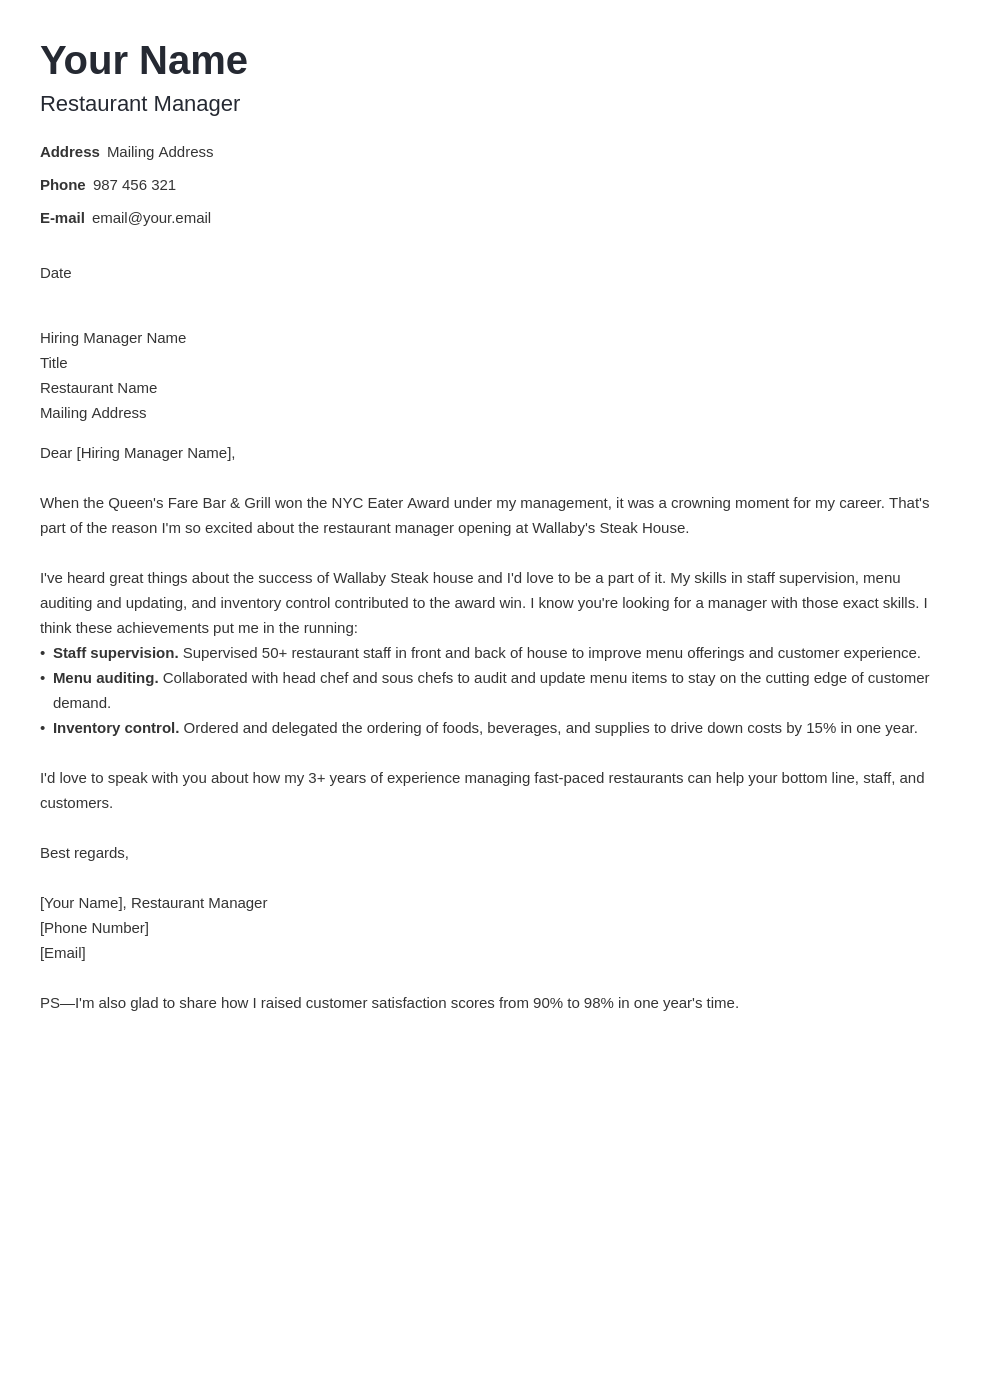 cover letter examples restaurant manager template minimo uk